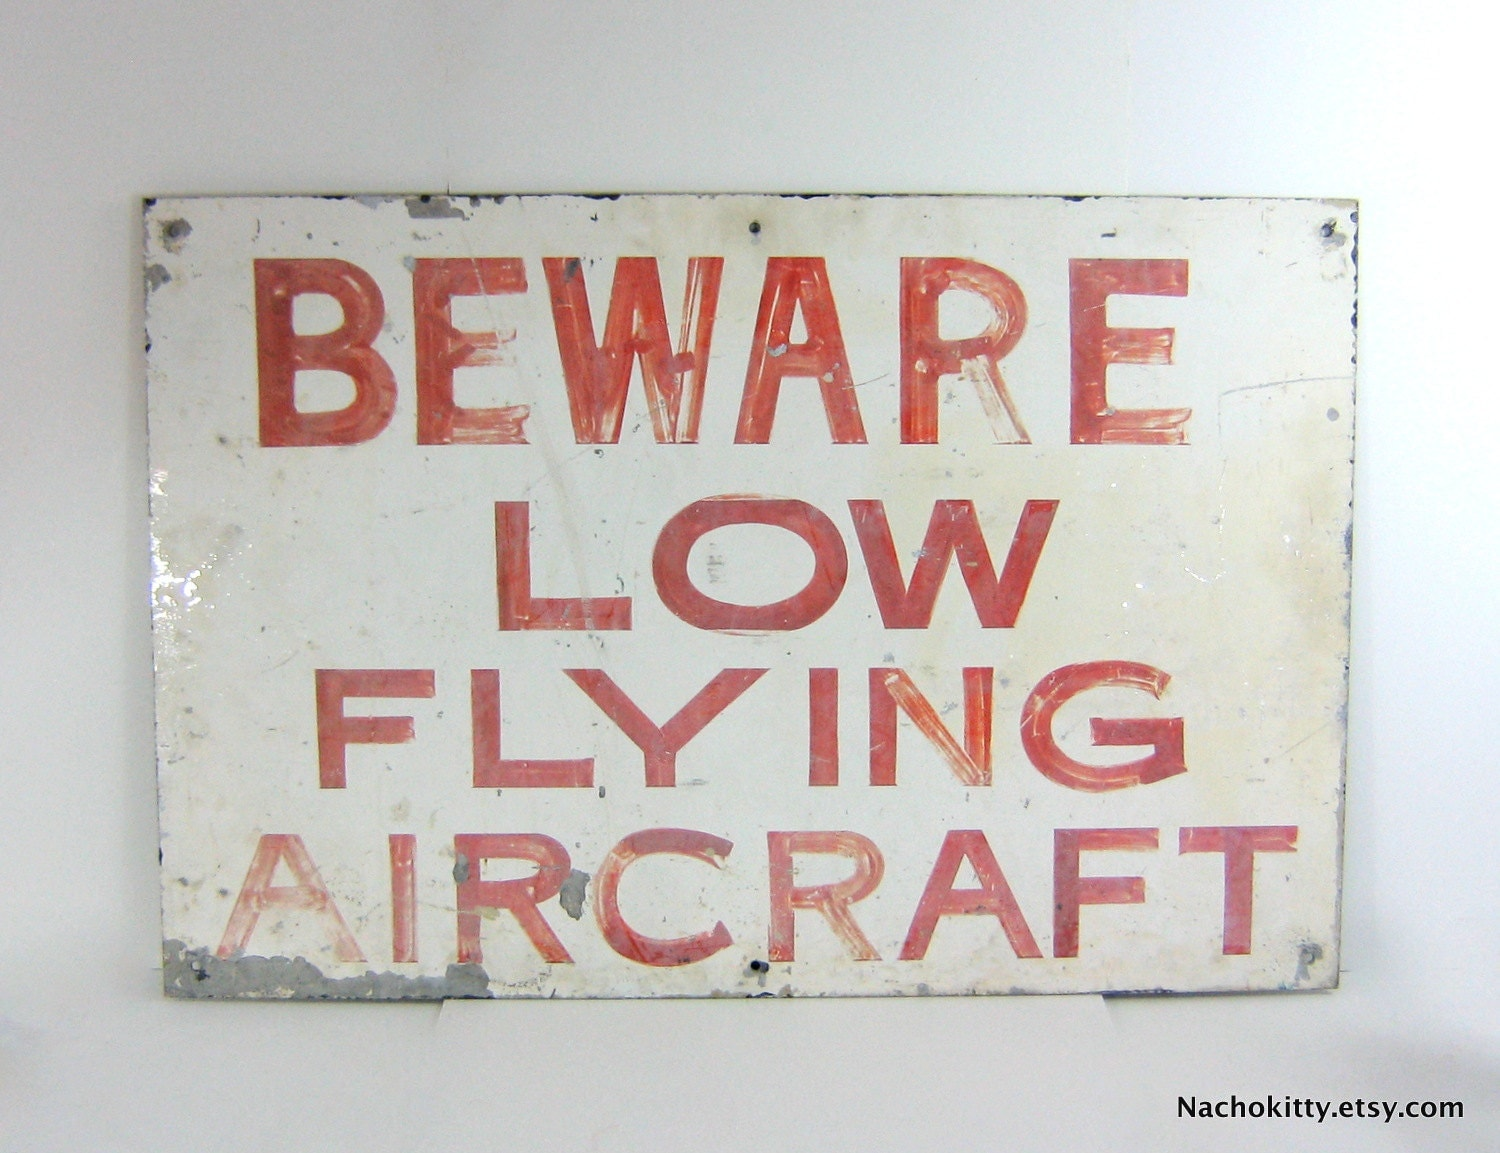 Old Double Sided Metal Sign, Aircraft & Prisoners - Nachokitty